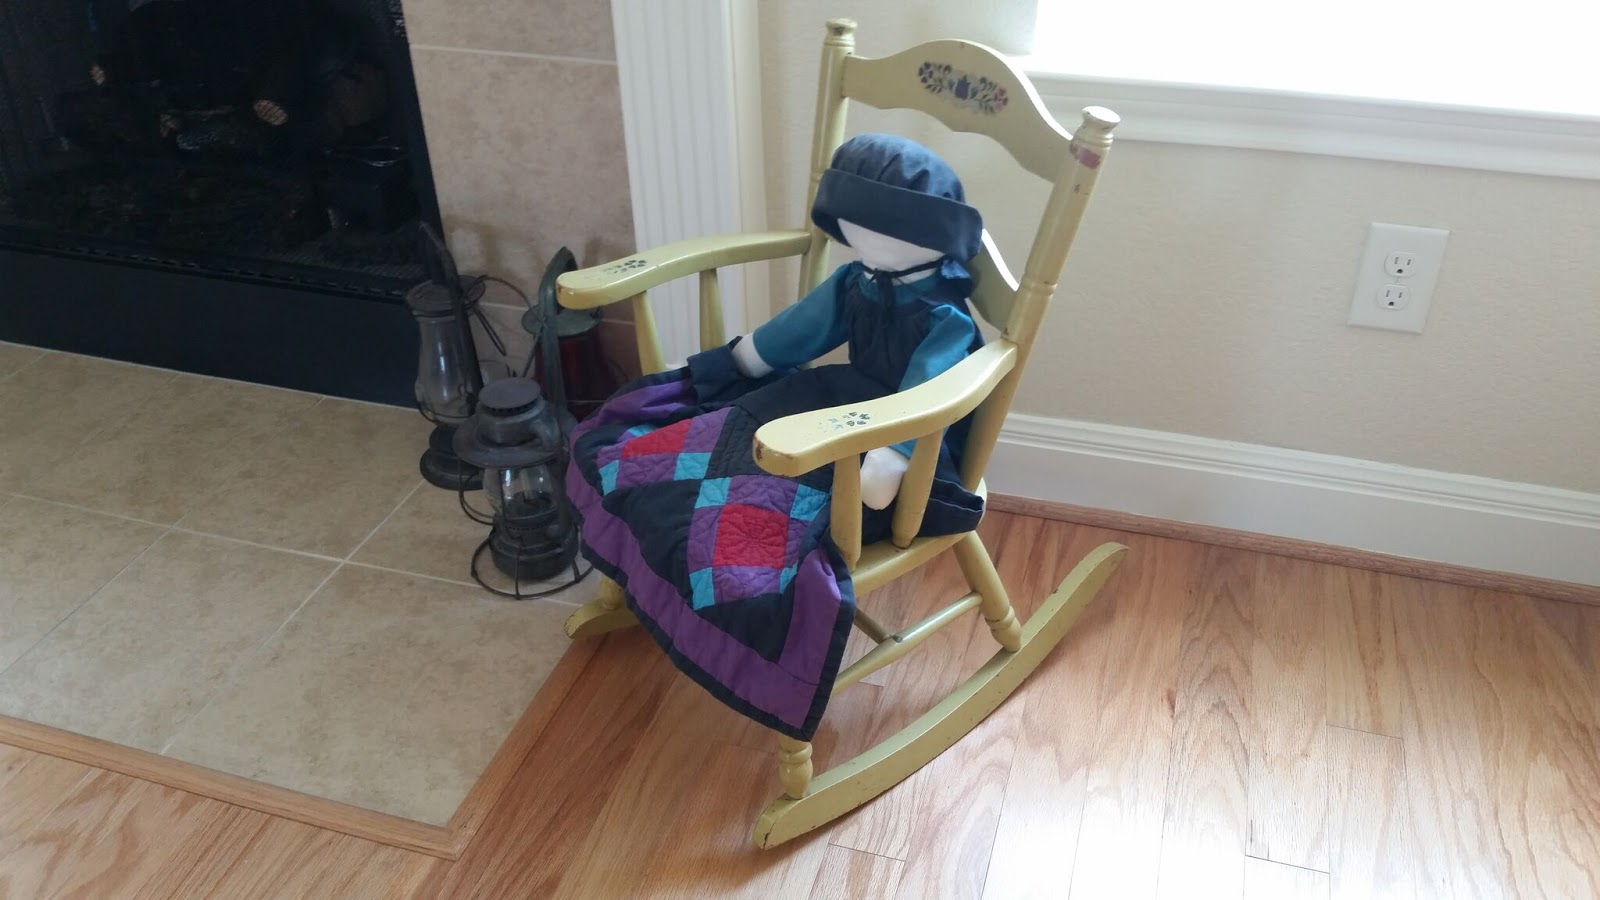 aunt priscilla has a rocking chair low profile beach chairs linda chontos decorating by part 3